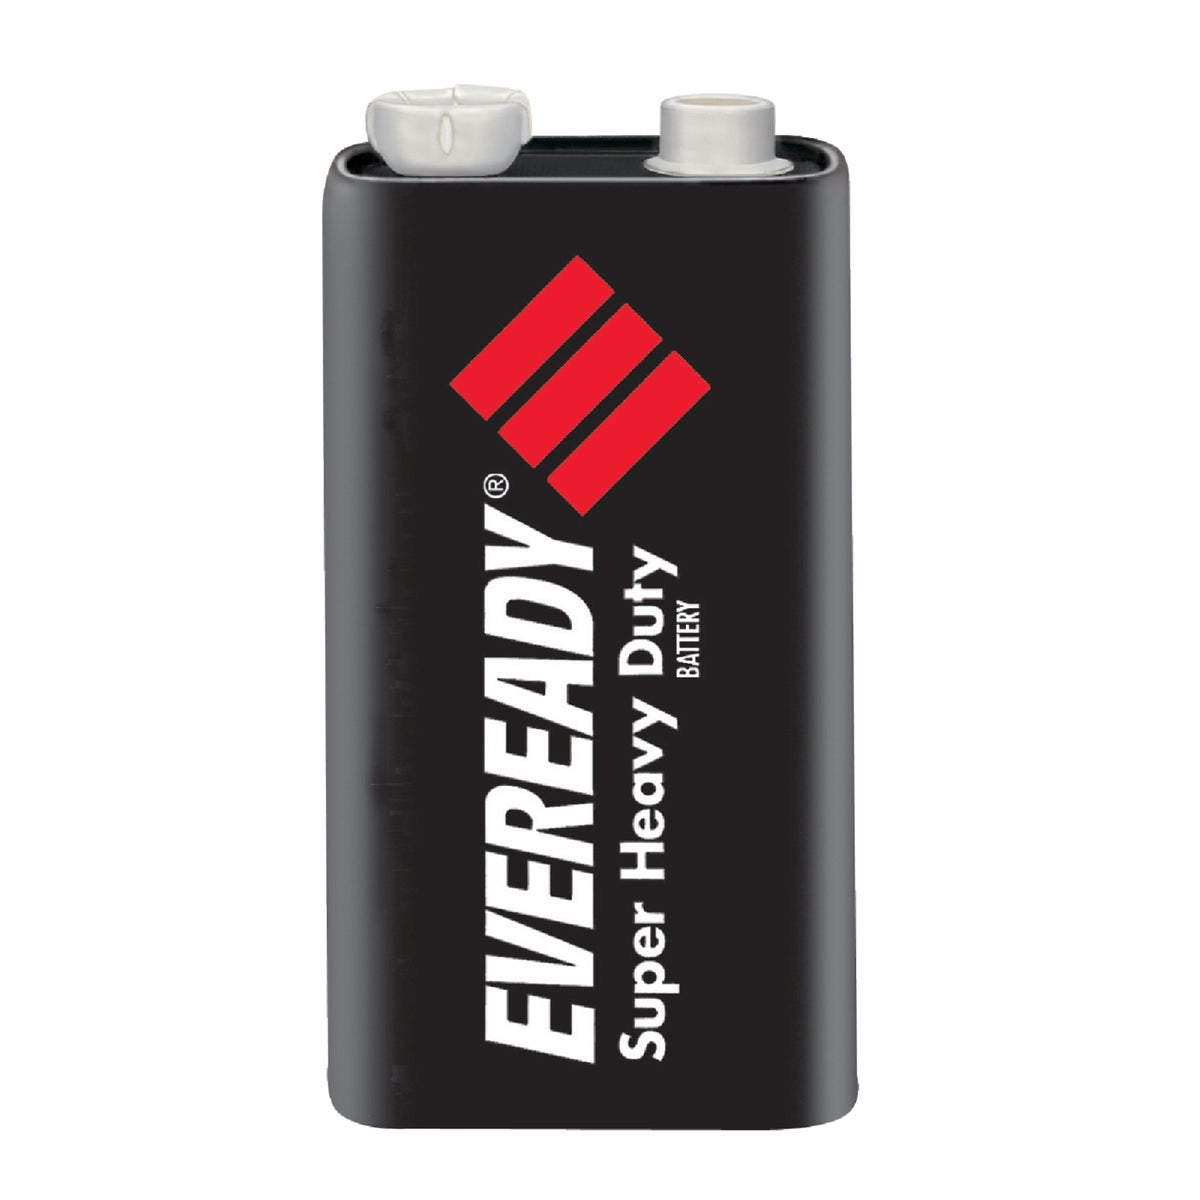 9V HEAVY DUTY BATTERY - 1222SW by Energizer